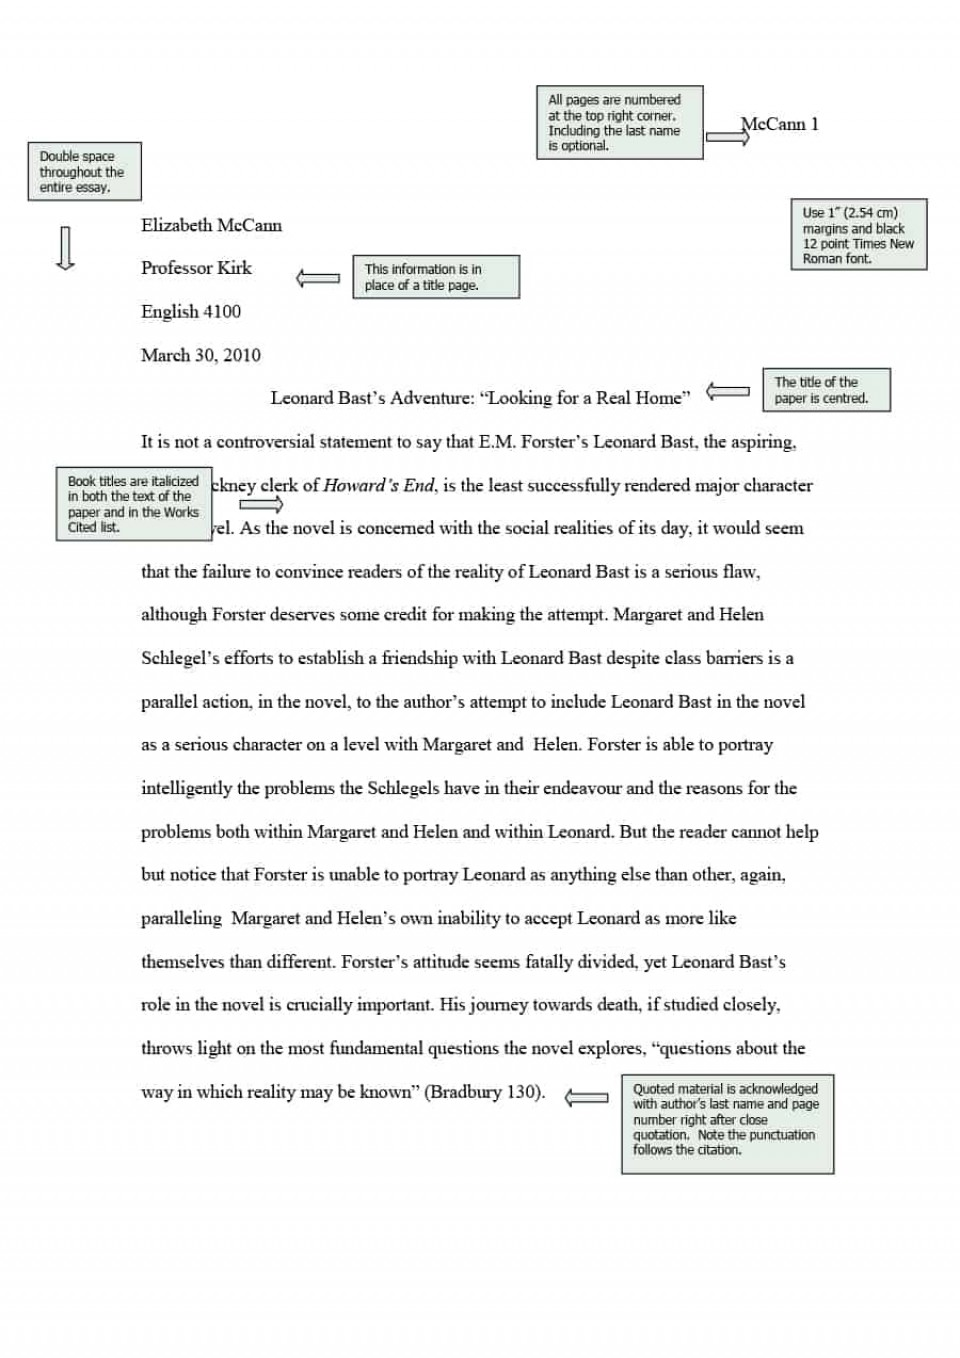 004 Essay Example Mla Format Template Sensational With Cover Page Titles Works Cited 960